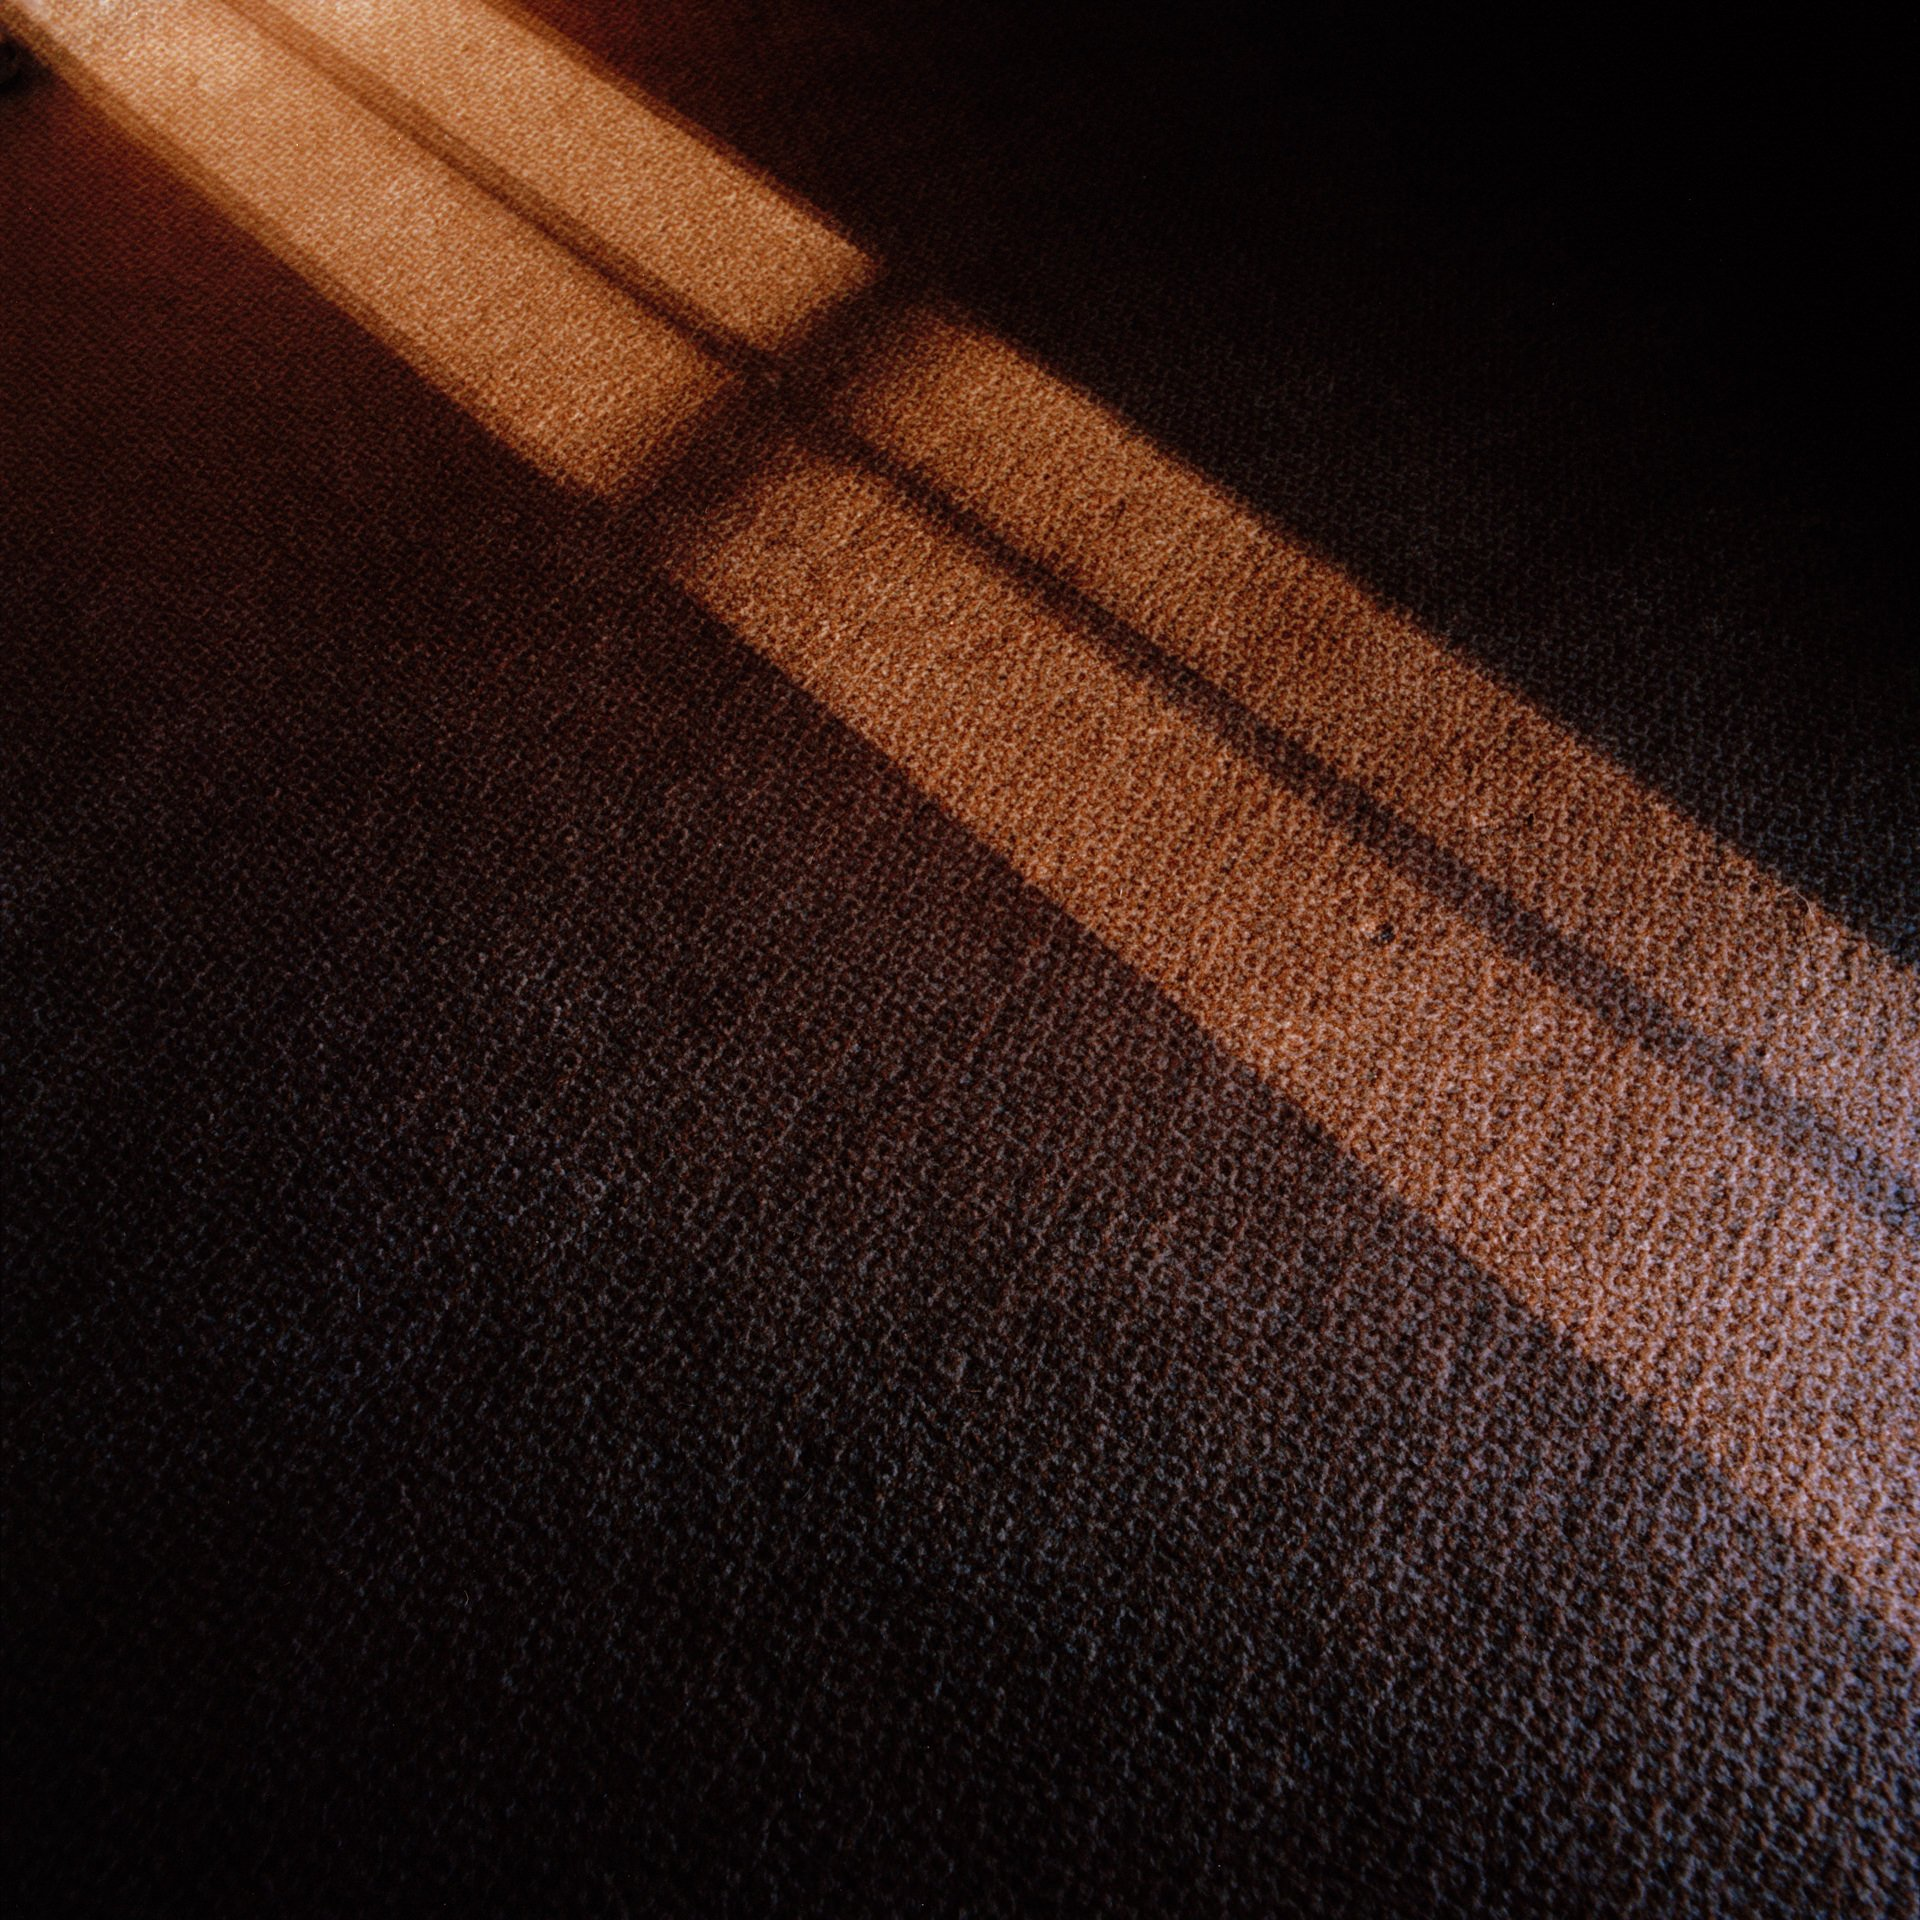 Golden light reflects a window onto brown carpet that appears like a holy cross